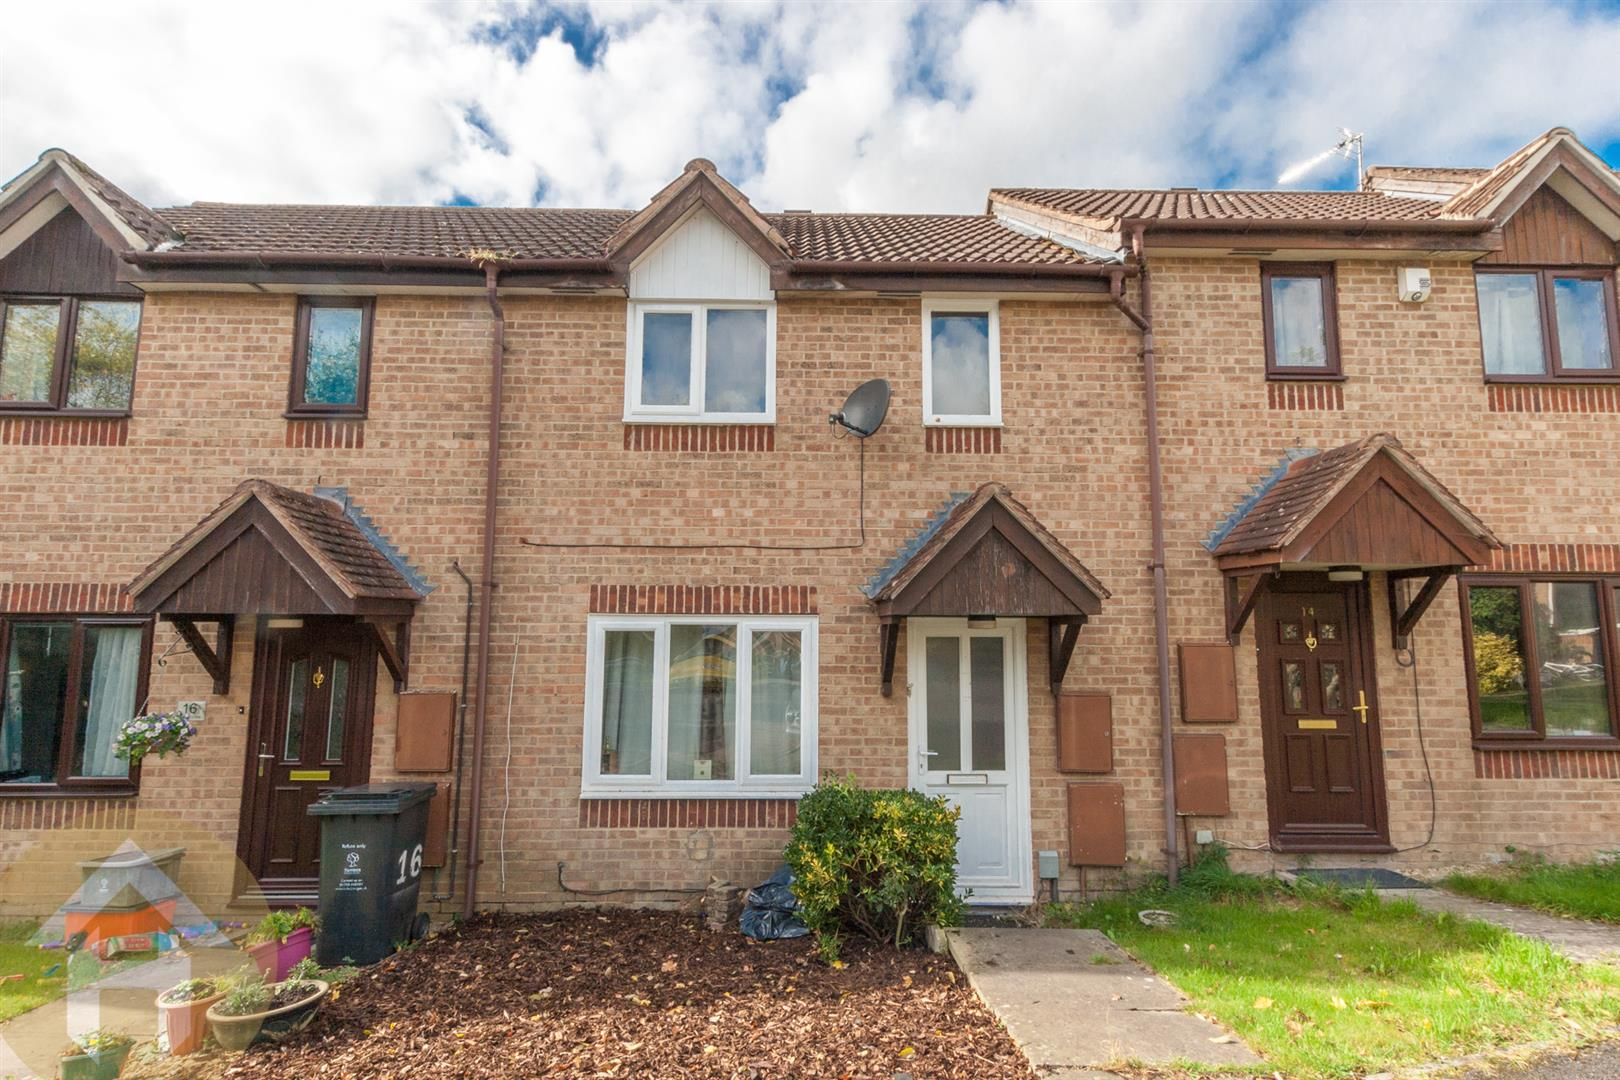 2 Bedrooms Terraced House for sale in Rannoch Close, Sparcells, Swindon